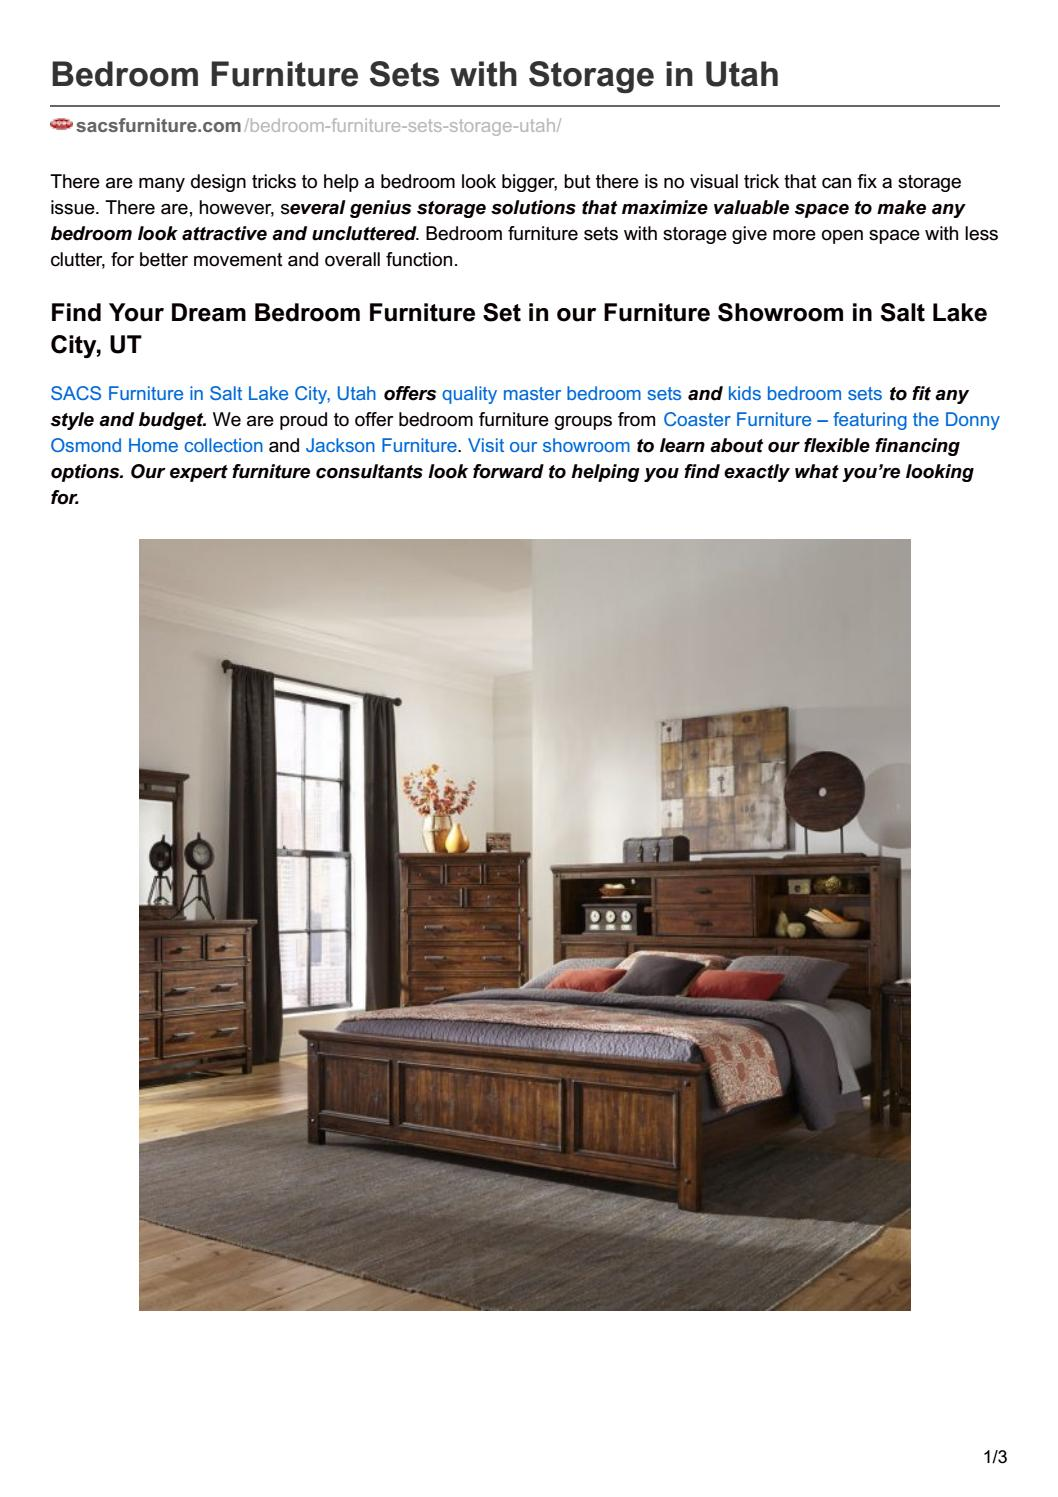 Bedroom furniture sets with storage in utah by SACS Furniture - issuu